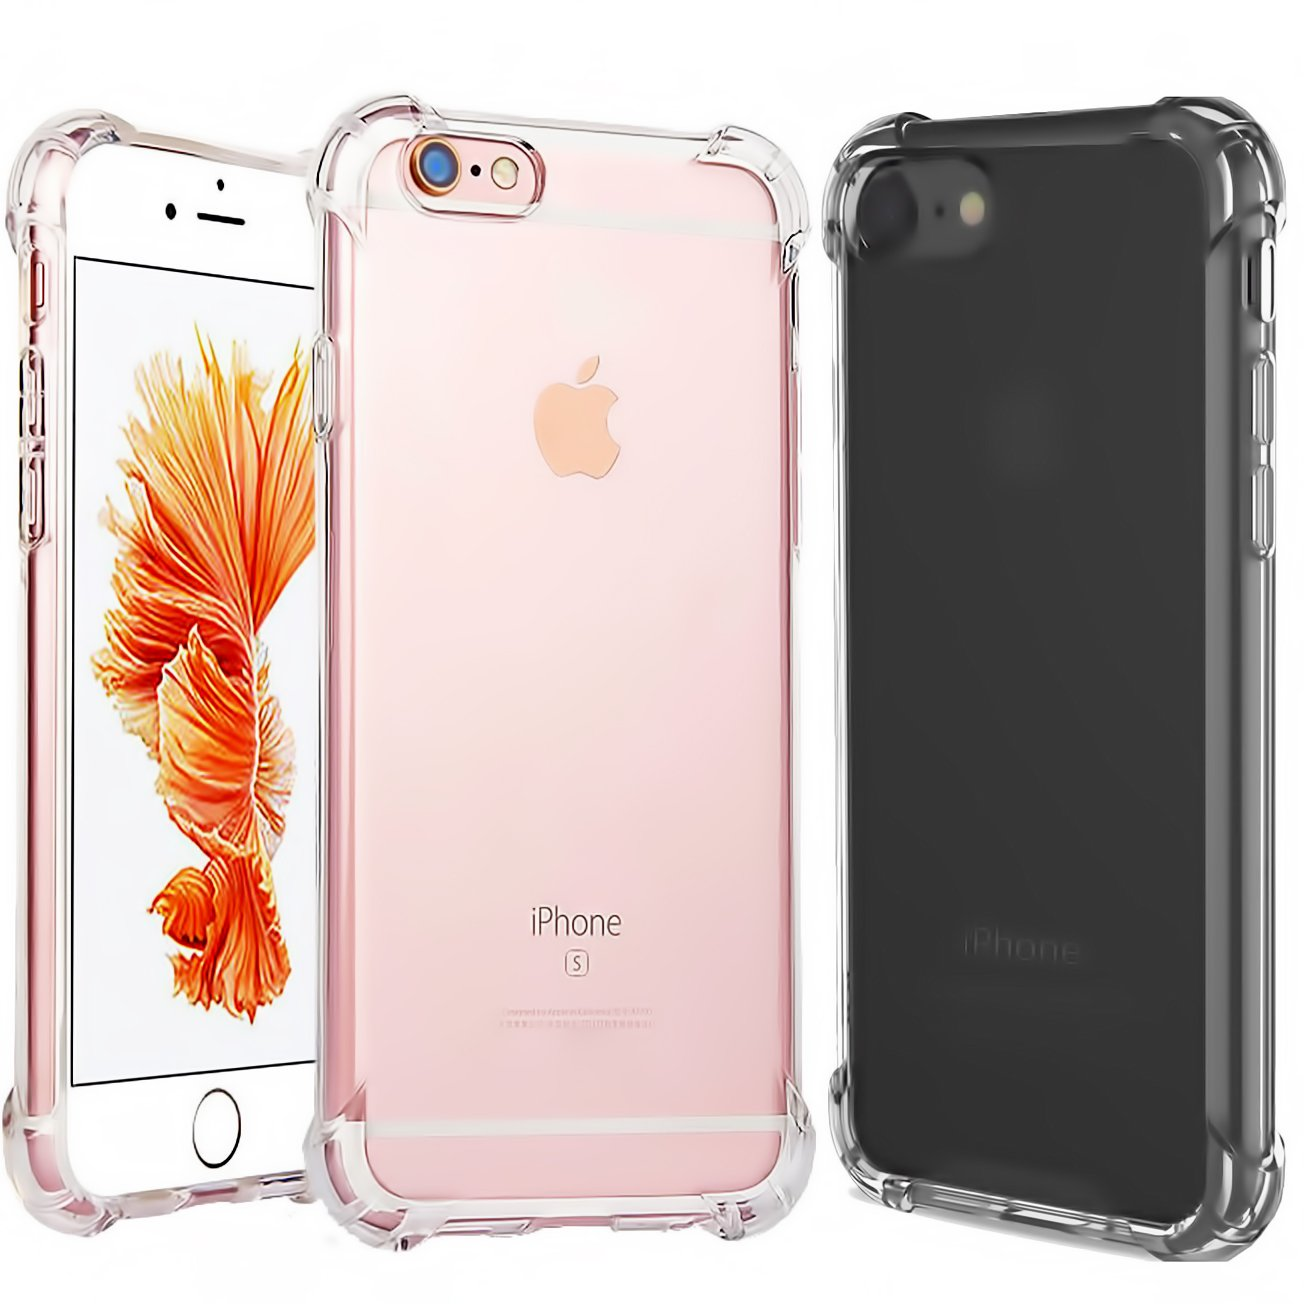 new arrivals 81bf9 7351e Top 2 iphone 6 protective case ebay